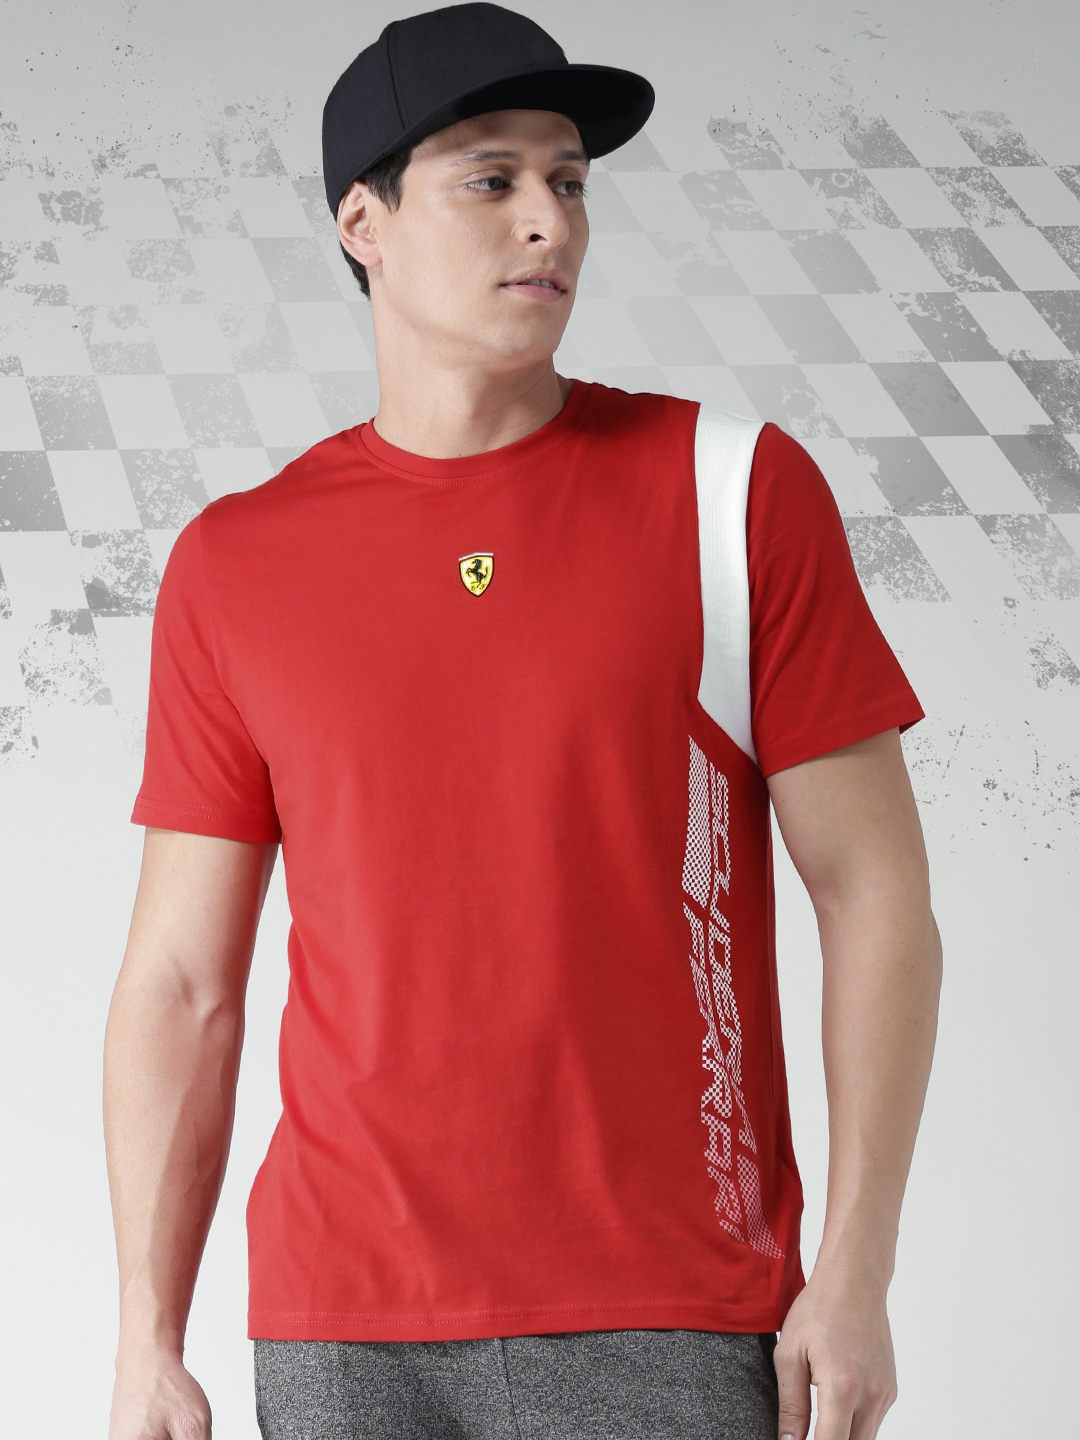 bd3023f2cf56 11488286418515-Ferrari-Men-Red-Printed-Round-Neck -T-Shirt-4201488286418152-1.jpg